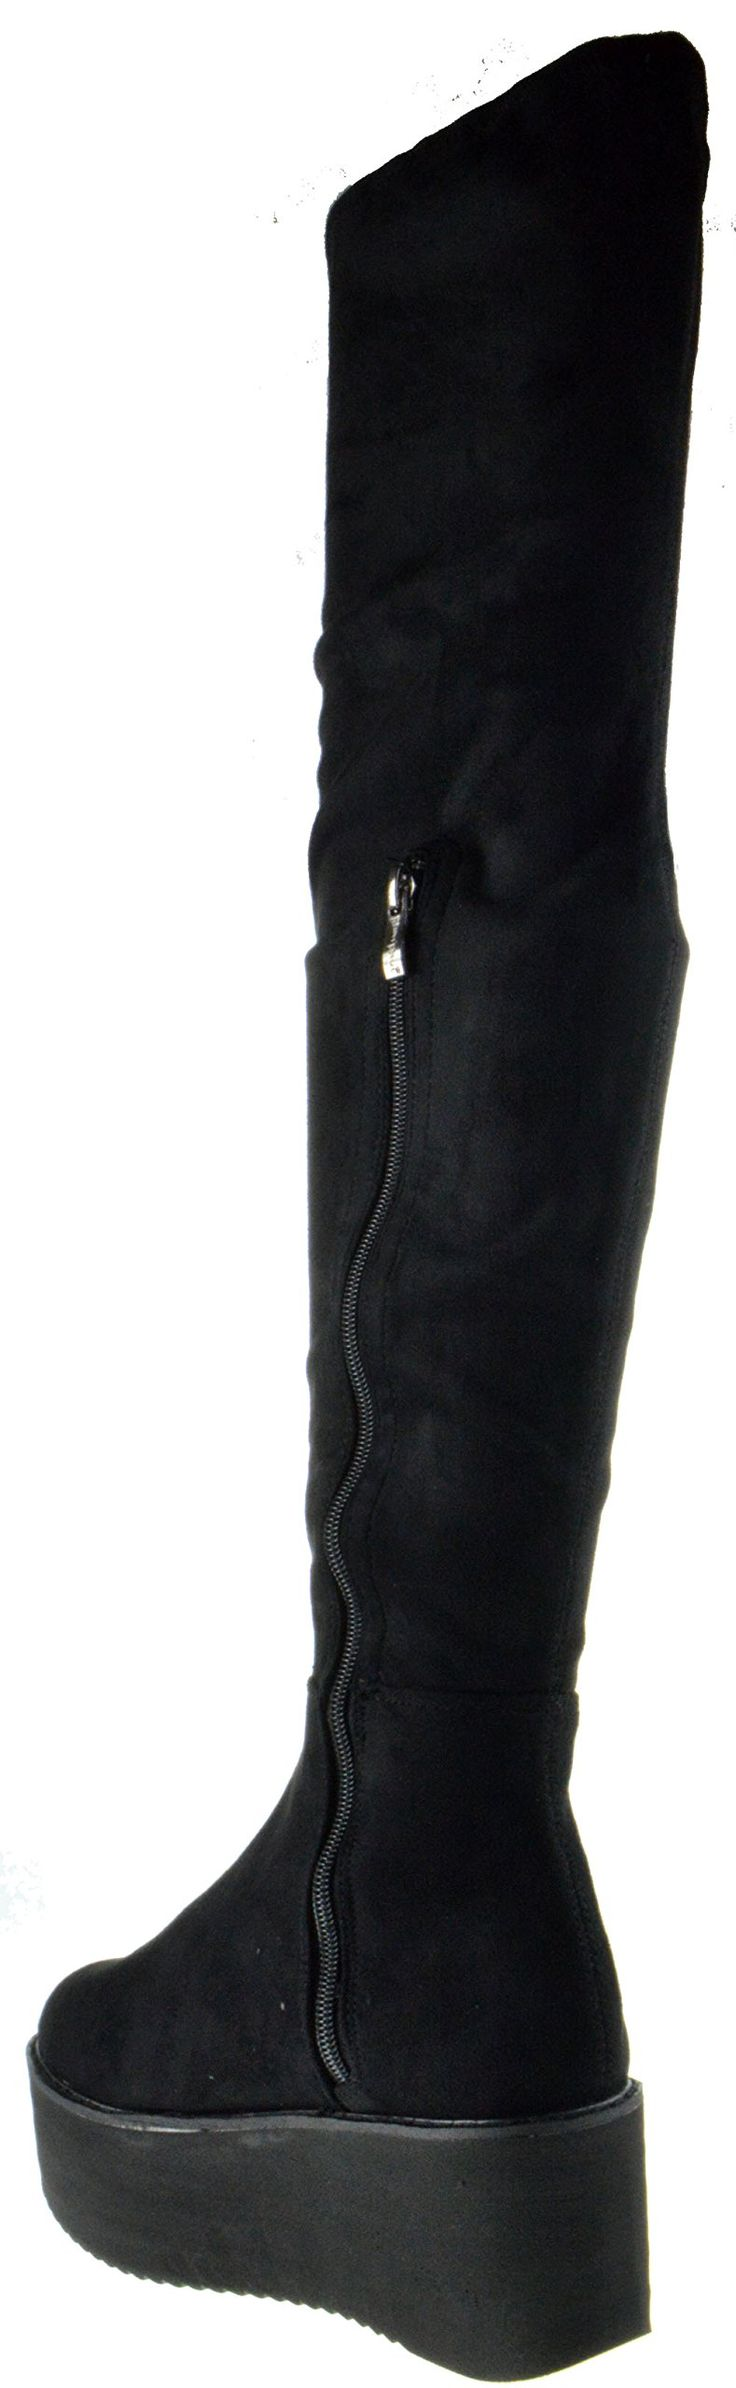 Hersey 03 TH Womens Thigh High Platform Riding Boots Black 7.5 -- Visit the image link more details. (This is an affiliate link) #ThighHighBoots